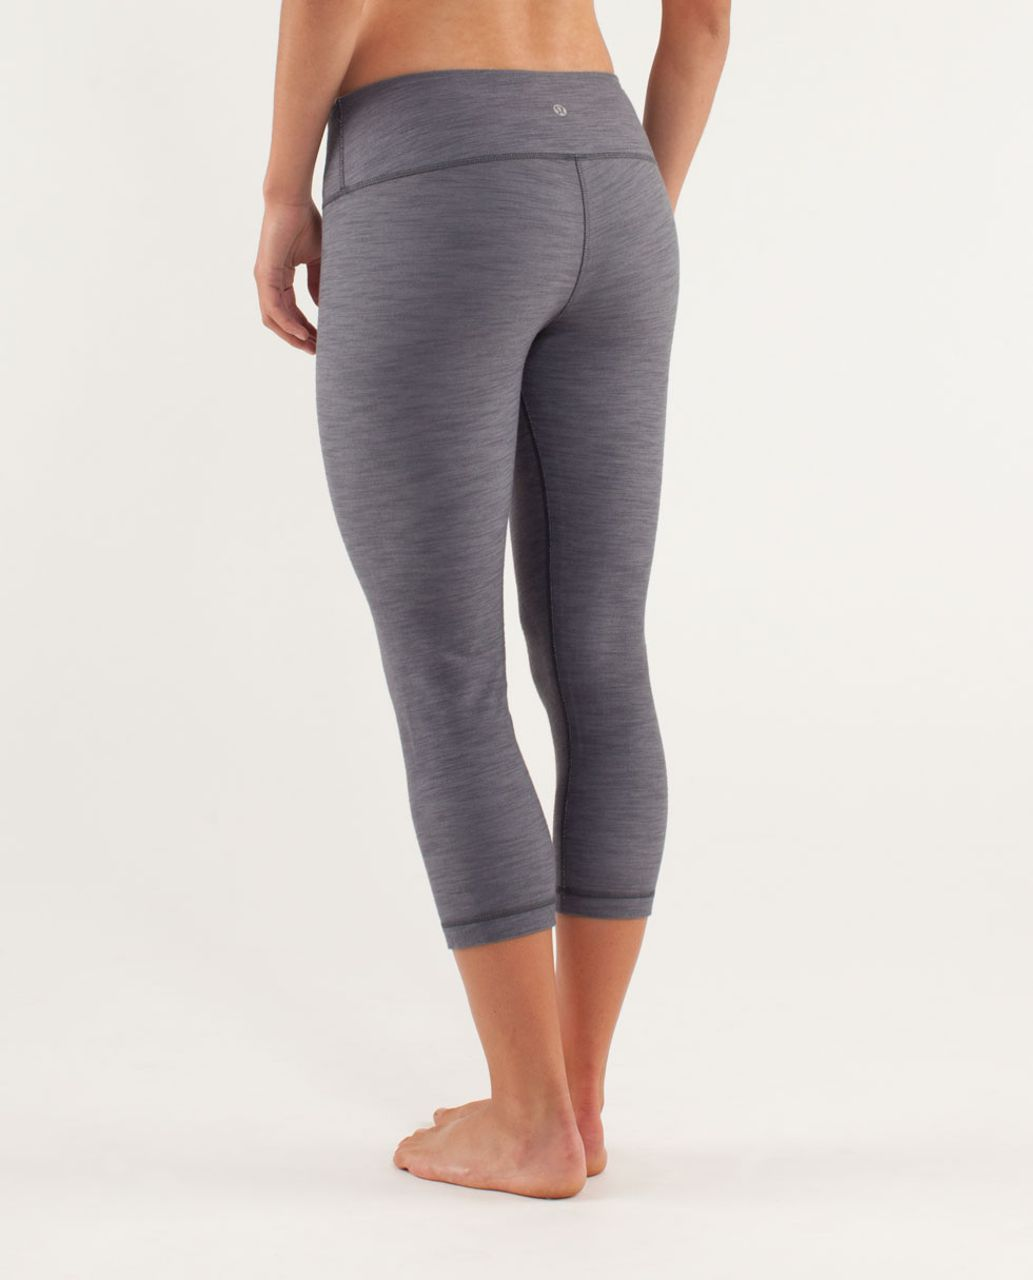 Lululemon Wunder Under Crop *Denim - Coal Fossil Slub Denim / Coal